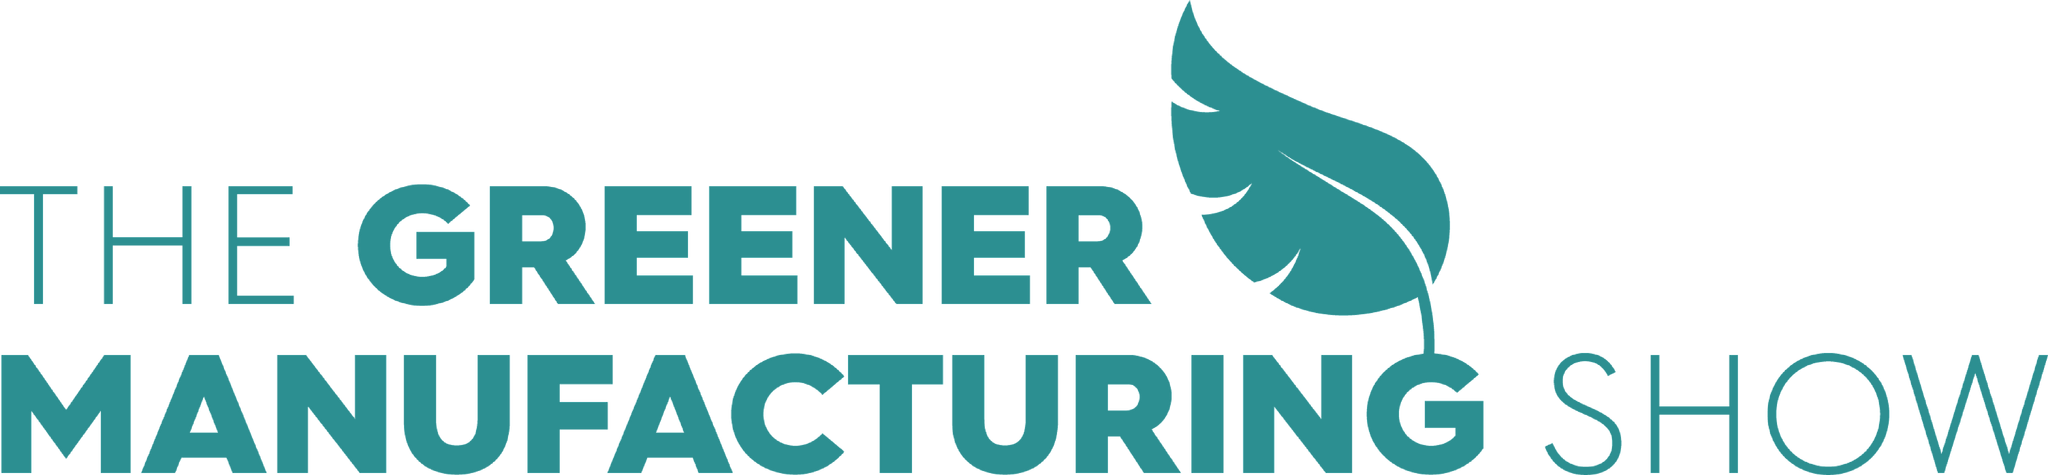 The Greener Manufacturing Show